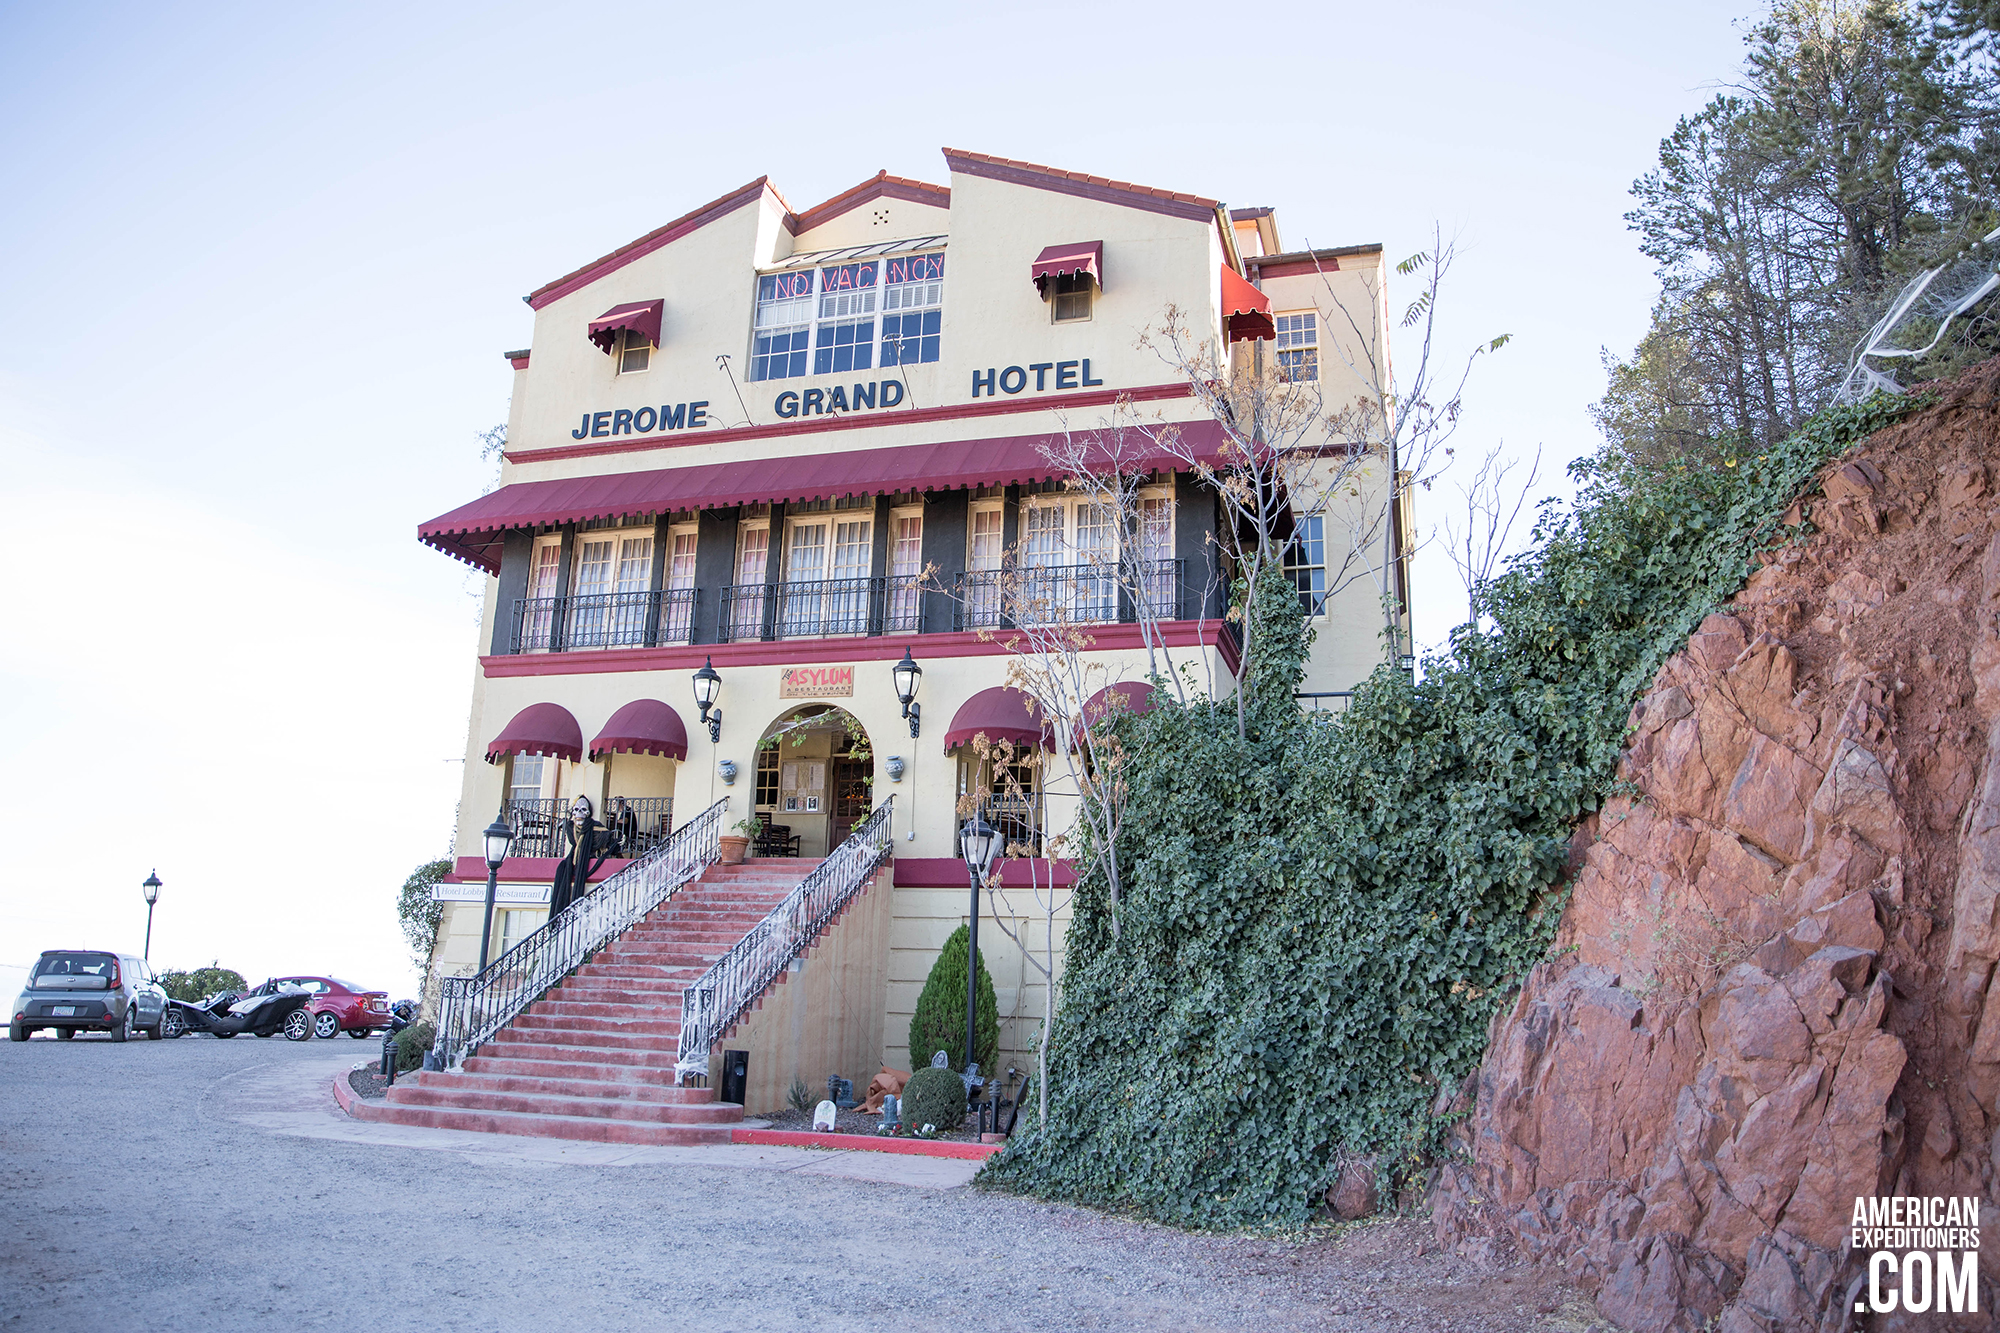 Historic And Haunted Jerome Grand Hotel In Arizona American Expeditioners Https